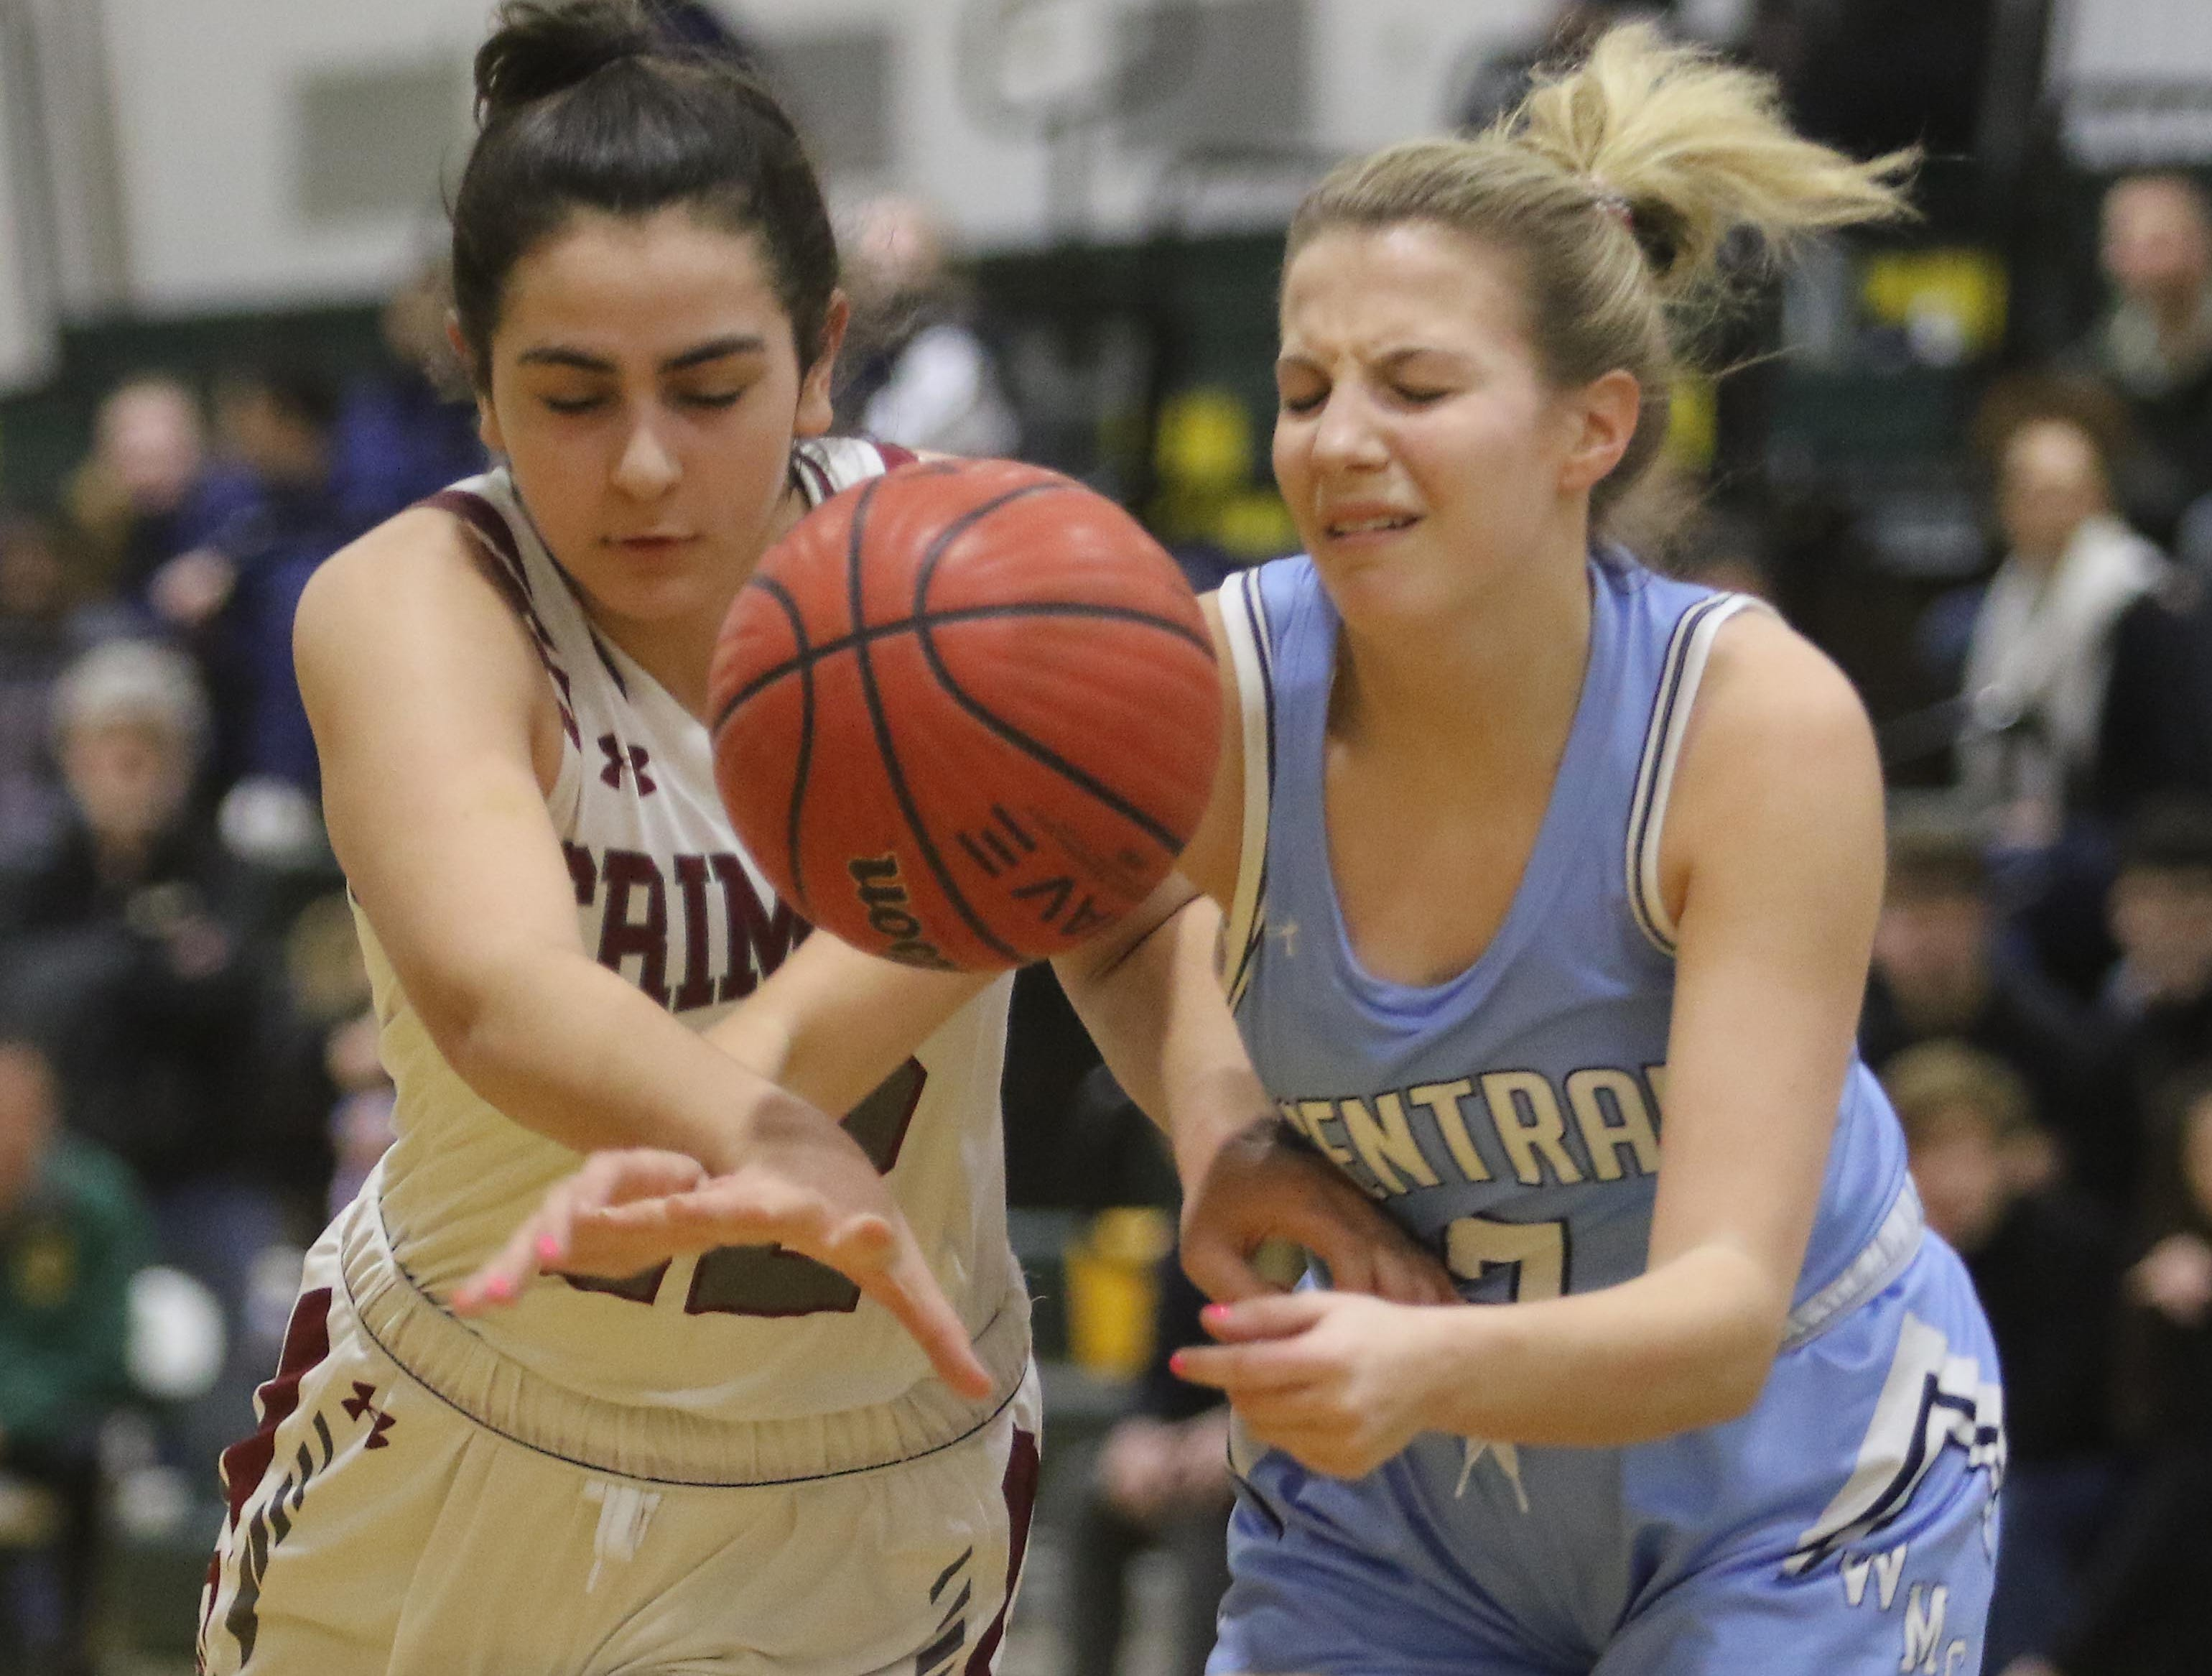 Morristown-Beard junior Addisyn Ibrahim goes for a rebound with Mackenzie Selvaggi of West Morris in the first half.